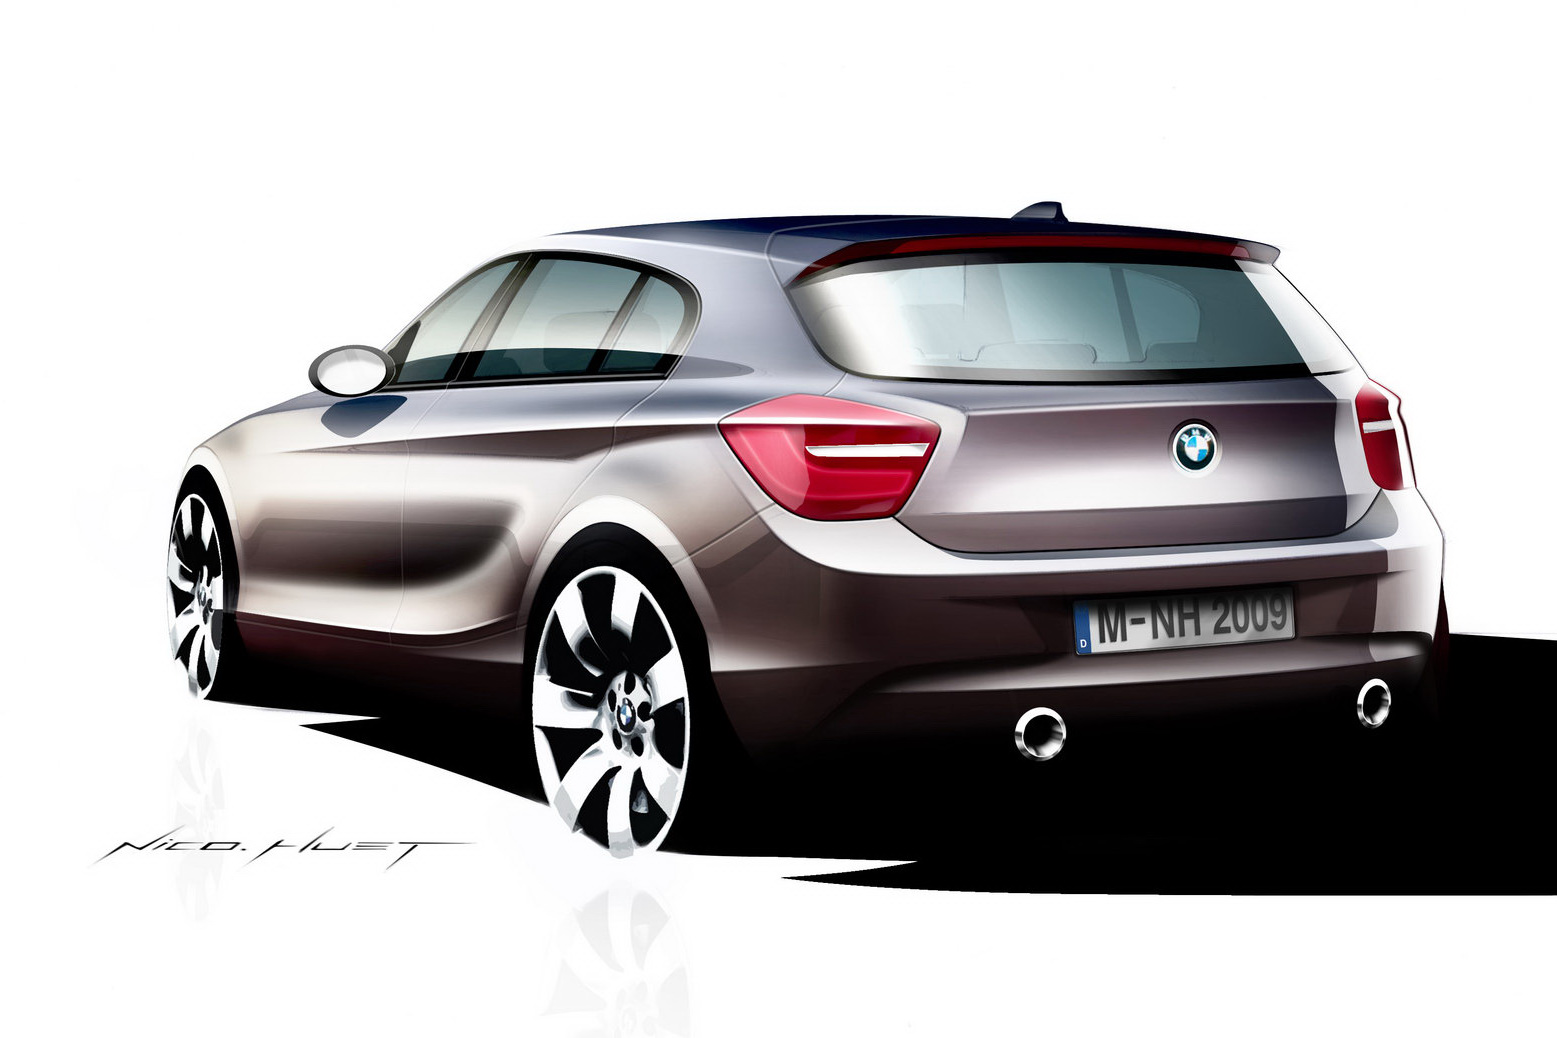 F20 BMW 1 Series sketches